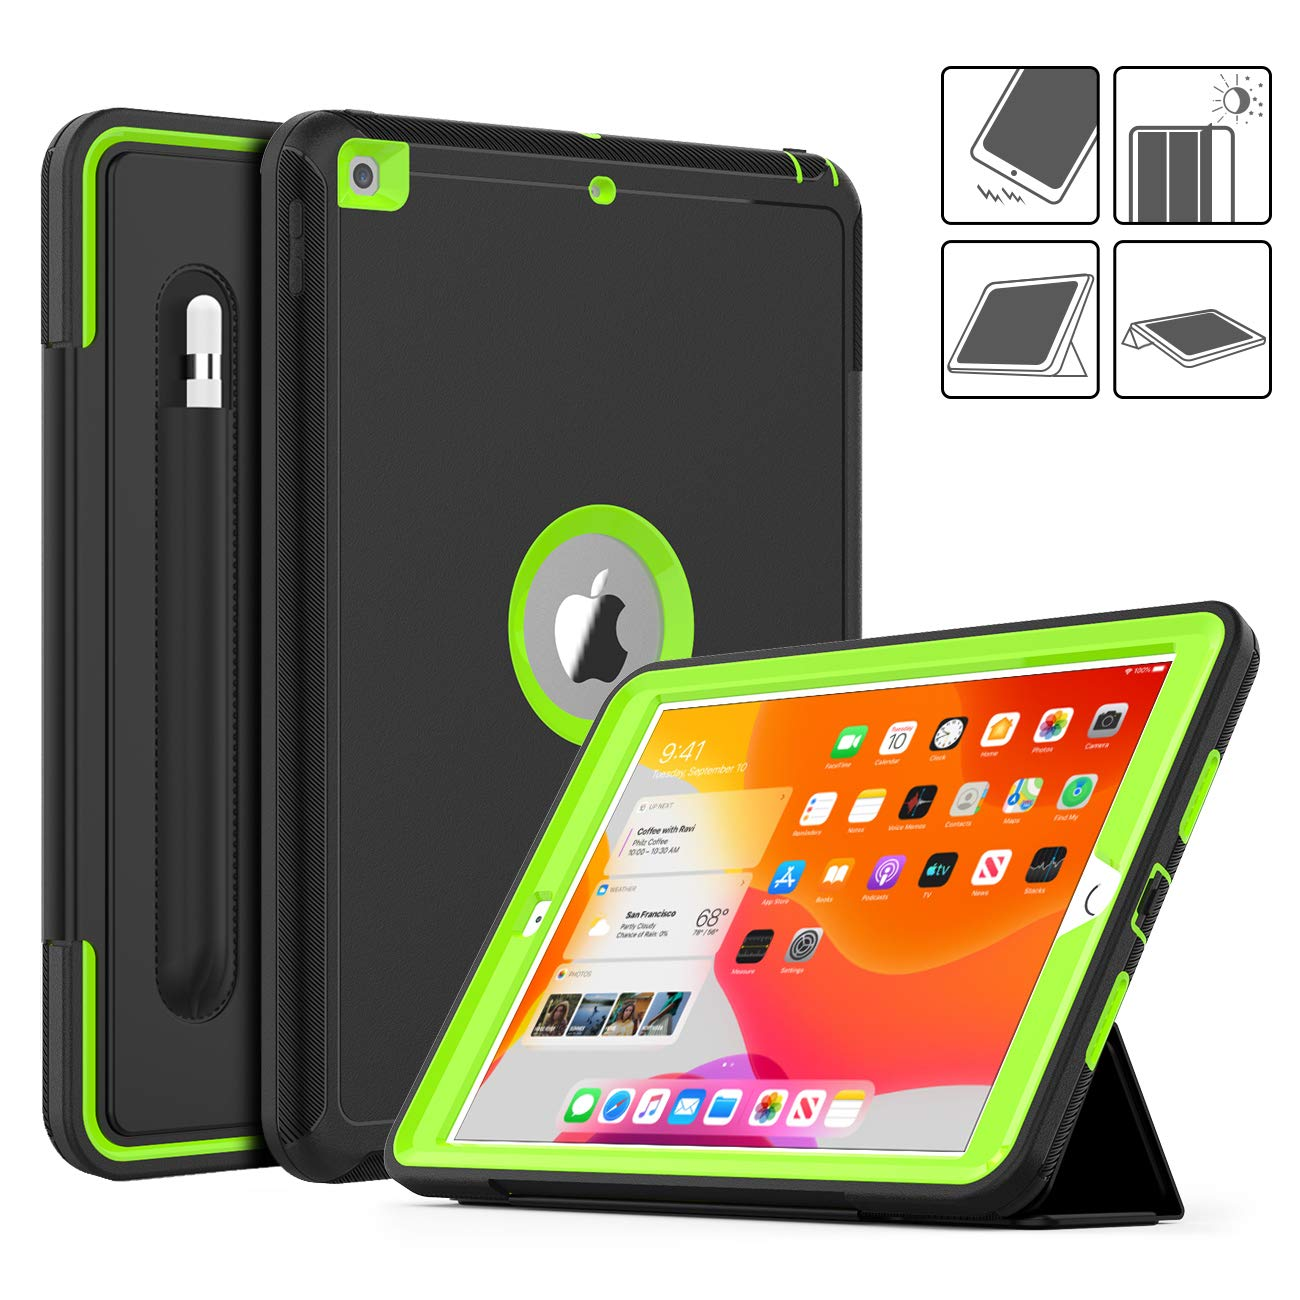 DAORANGE iPad 7th Generation case 10.2 inch 2019, Heavy Shockproof Full Body ProtectiveCase Smart Coverwith Auto Wake/Sleep&Tri-fold Stand[Pencil Holder] for iPad 7th Gen 10.2'' 2019 (Black/Green)